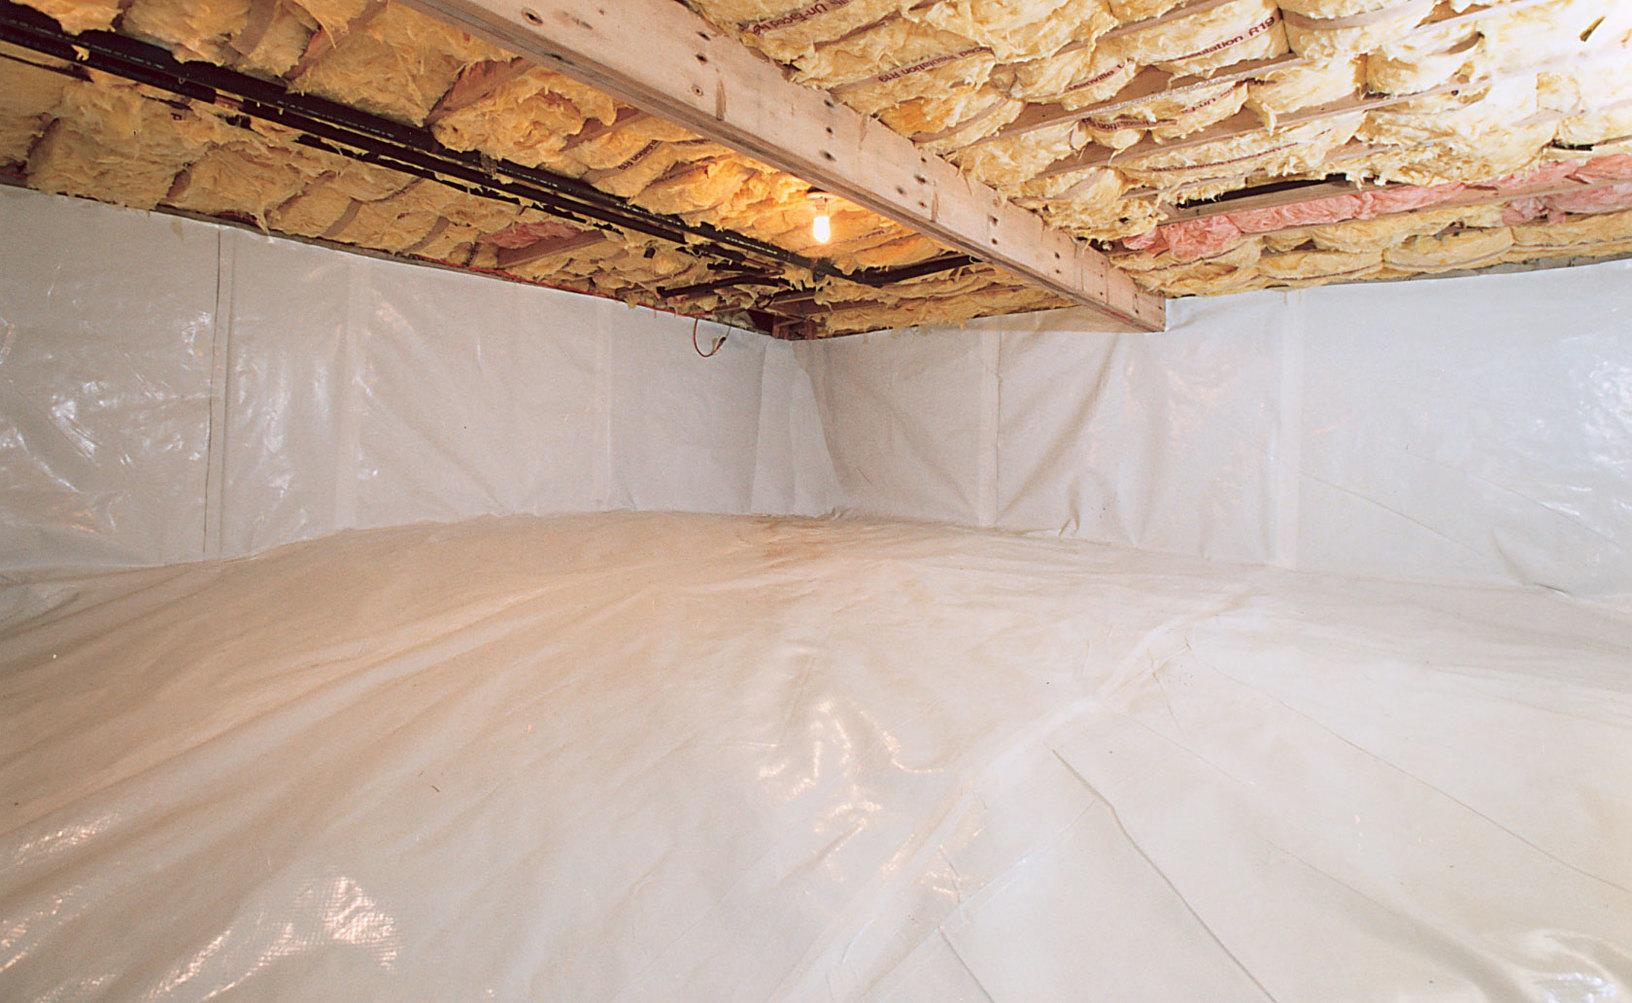 Crawl Space Encapsulation - After Photo